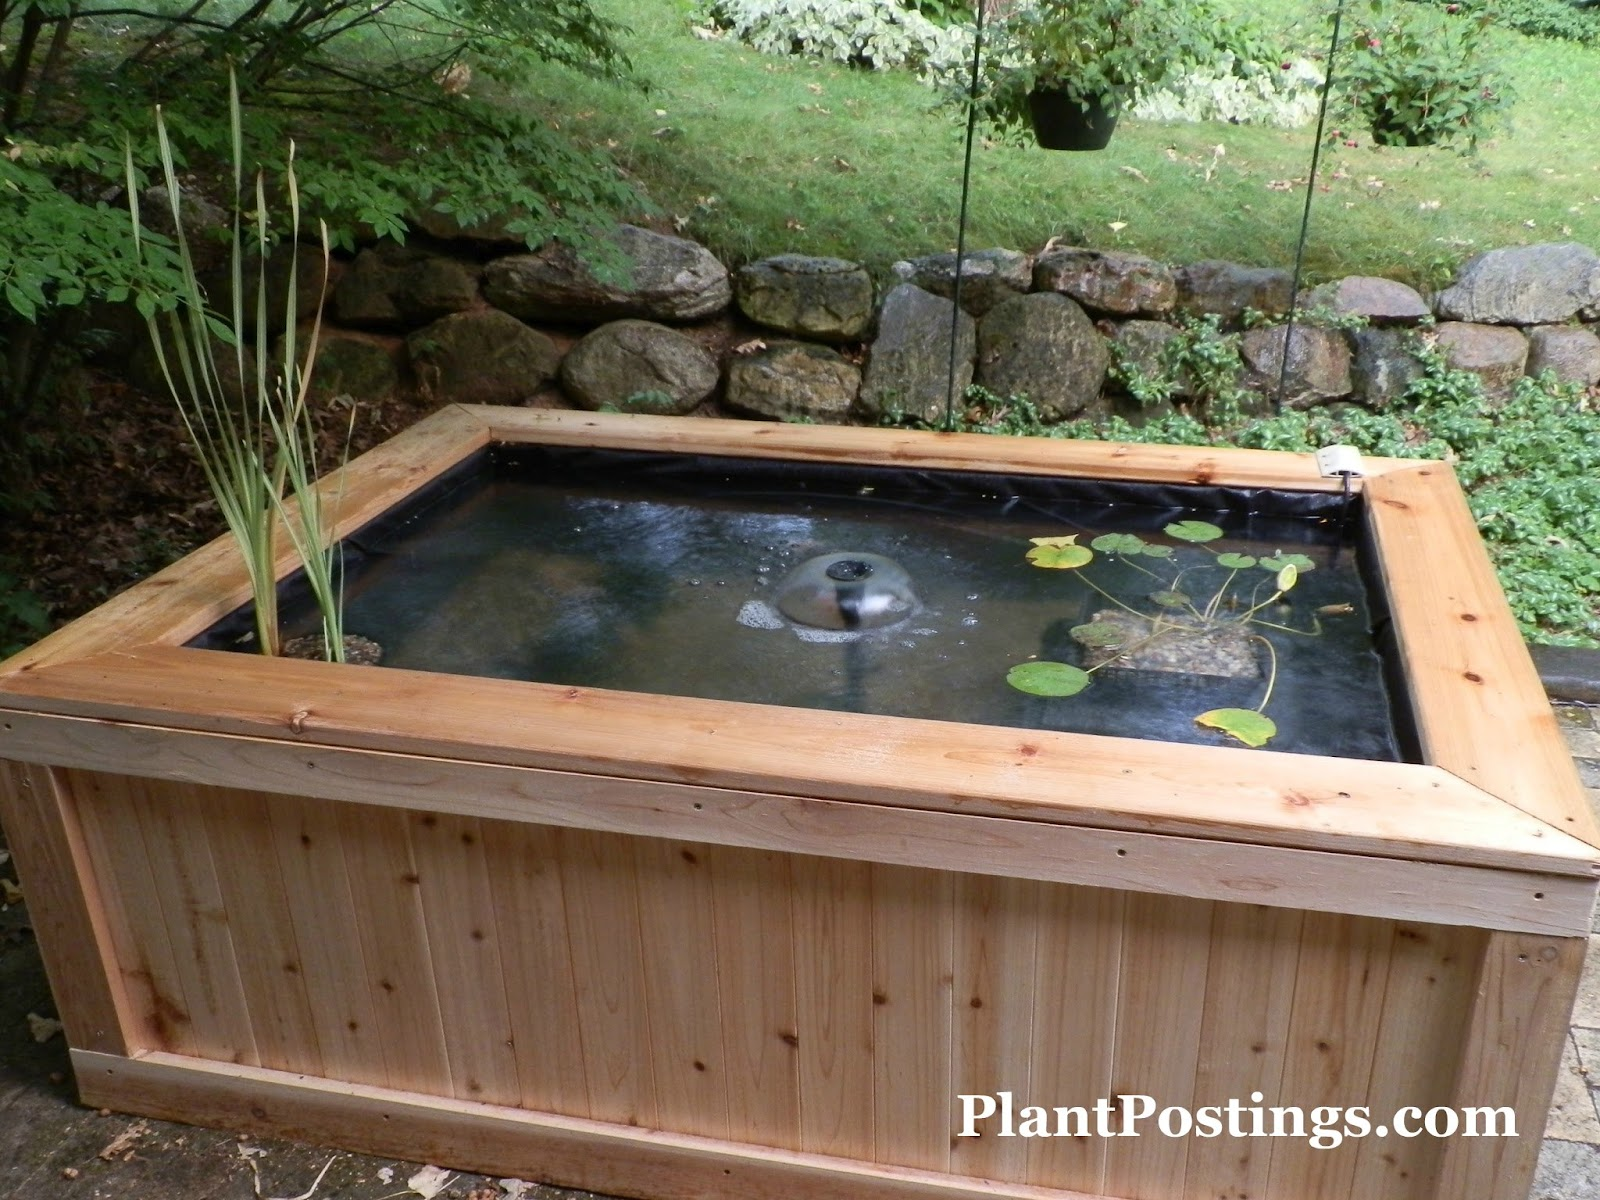 Plantpostings how to make an above ground pond for Making a fish pond